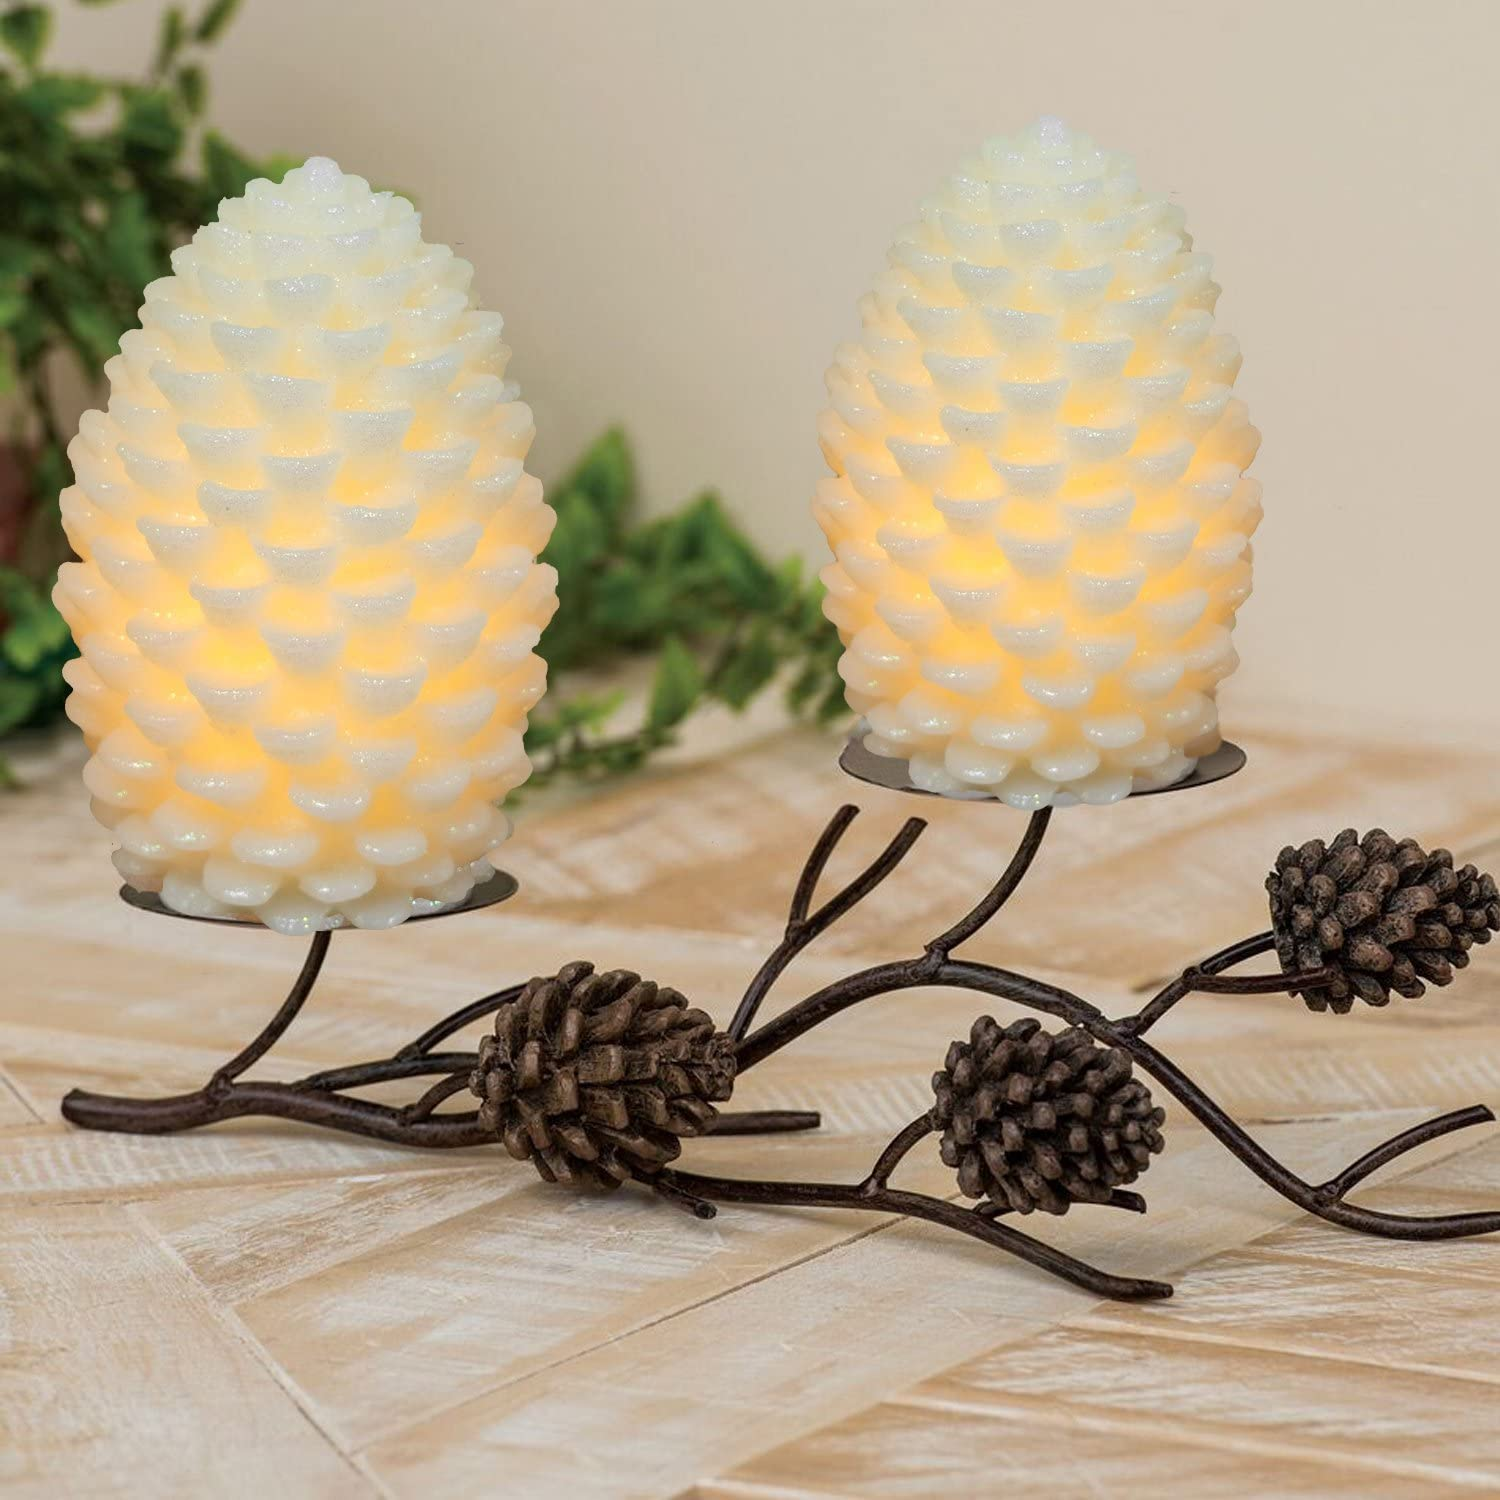 Xmas Party Decoration Battery Operated Pine Cone Shaped LED lamp for Home Set of 5 Ivory DRomance Christmas Decoration Pinecone Flameless LED Candles with Remote and Timer Decorative Light